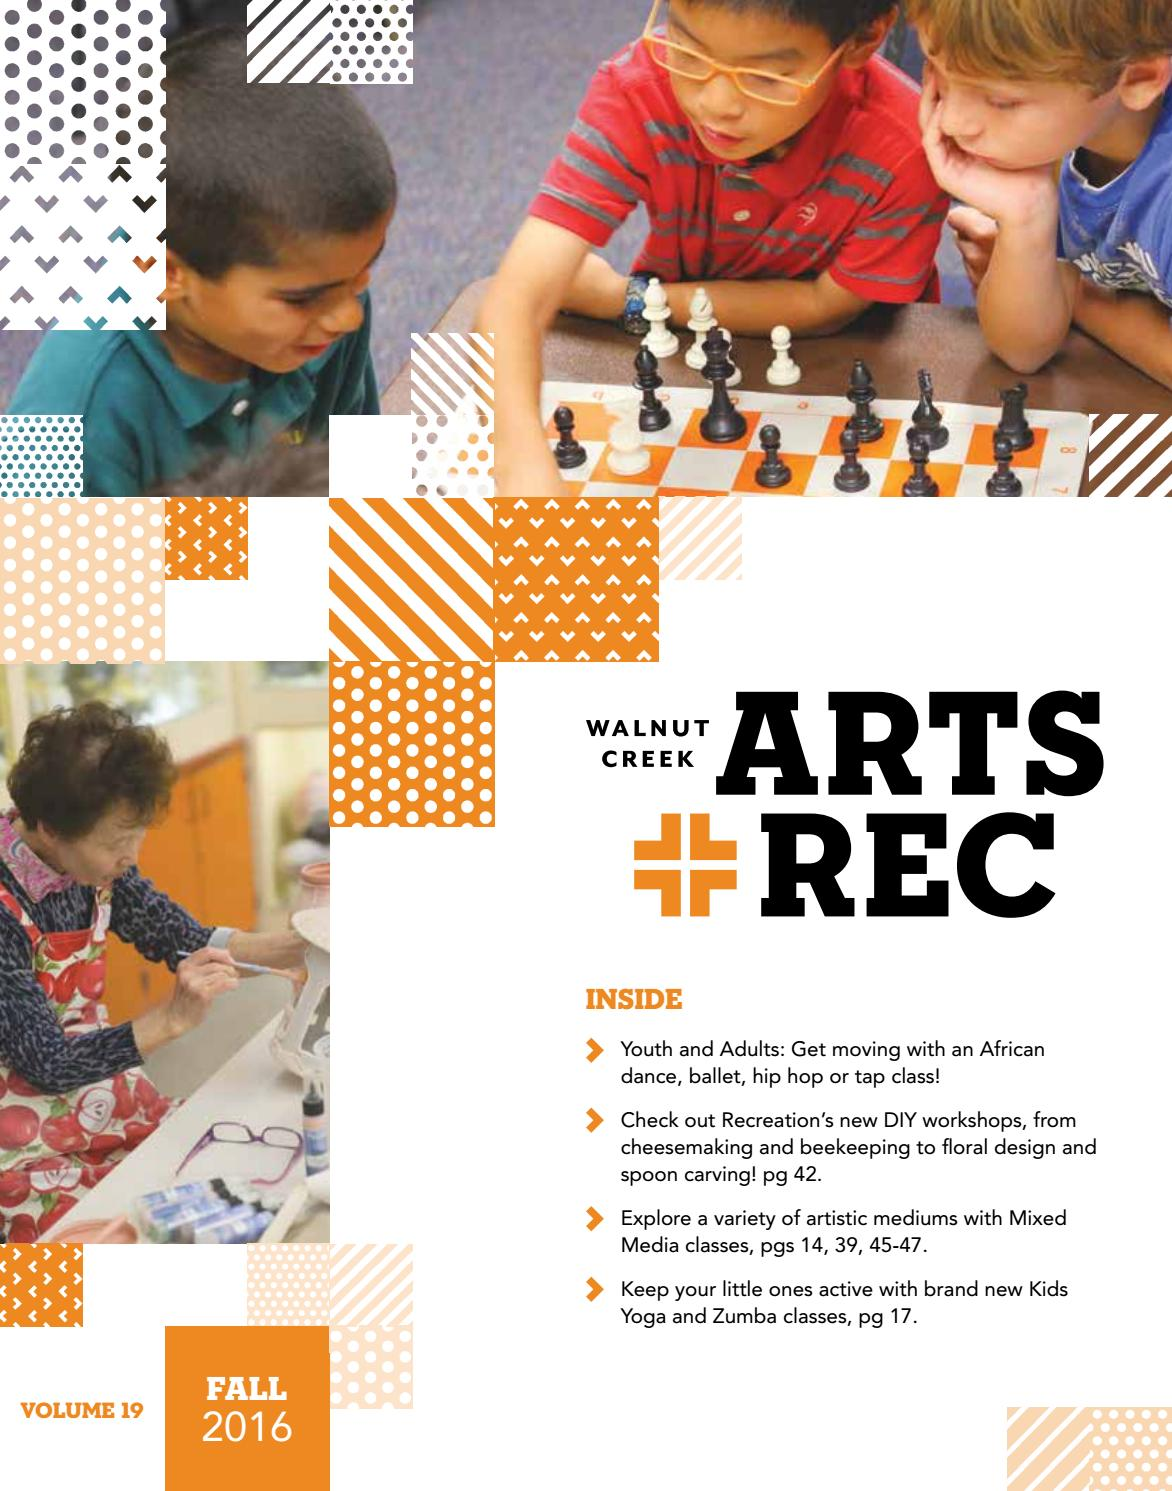 city of walnut creek guide to arts + rec - fall 2016city of